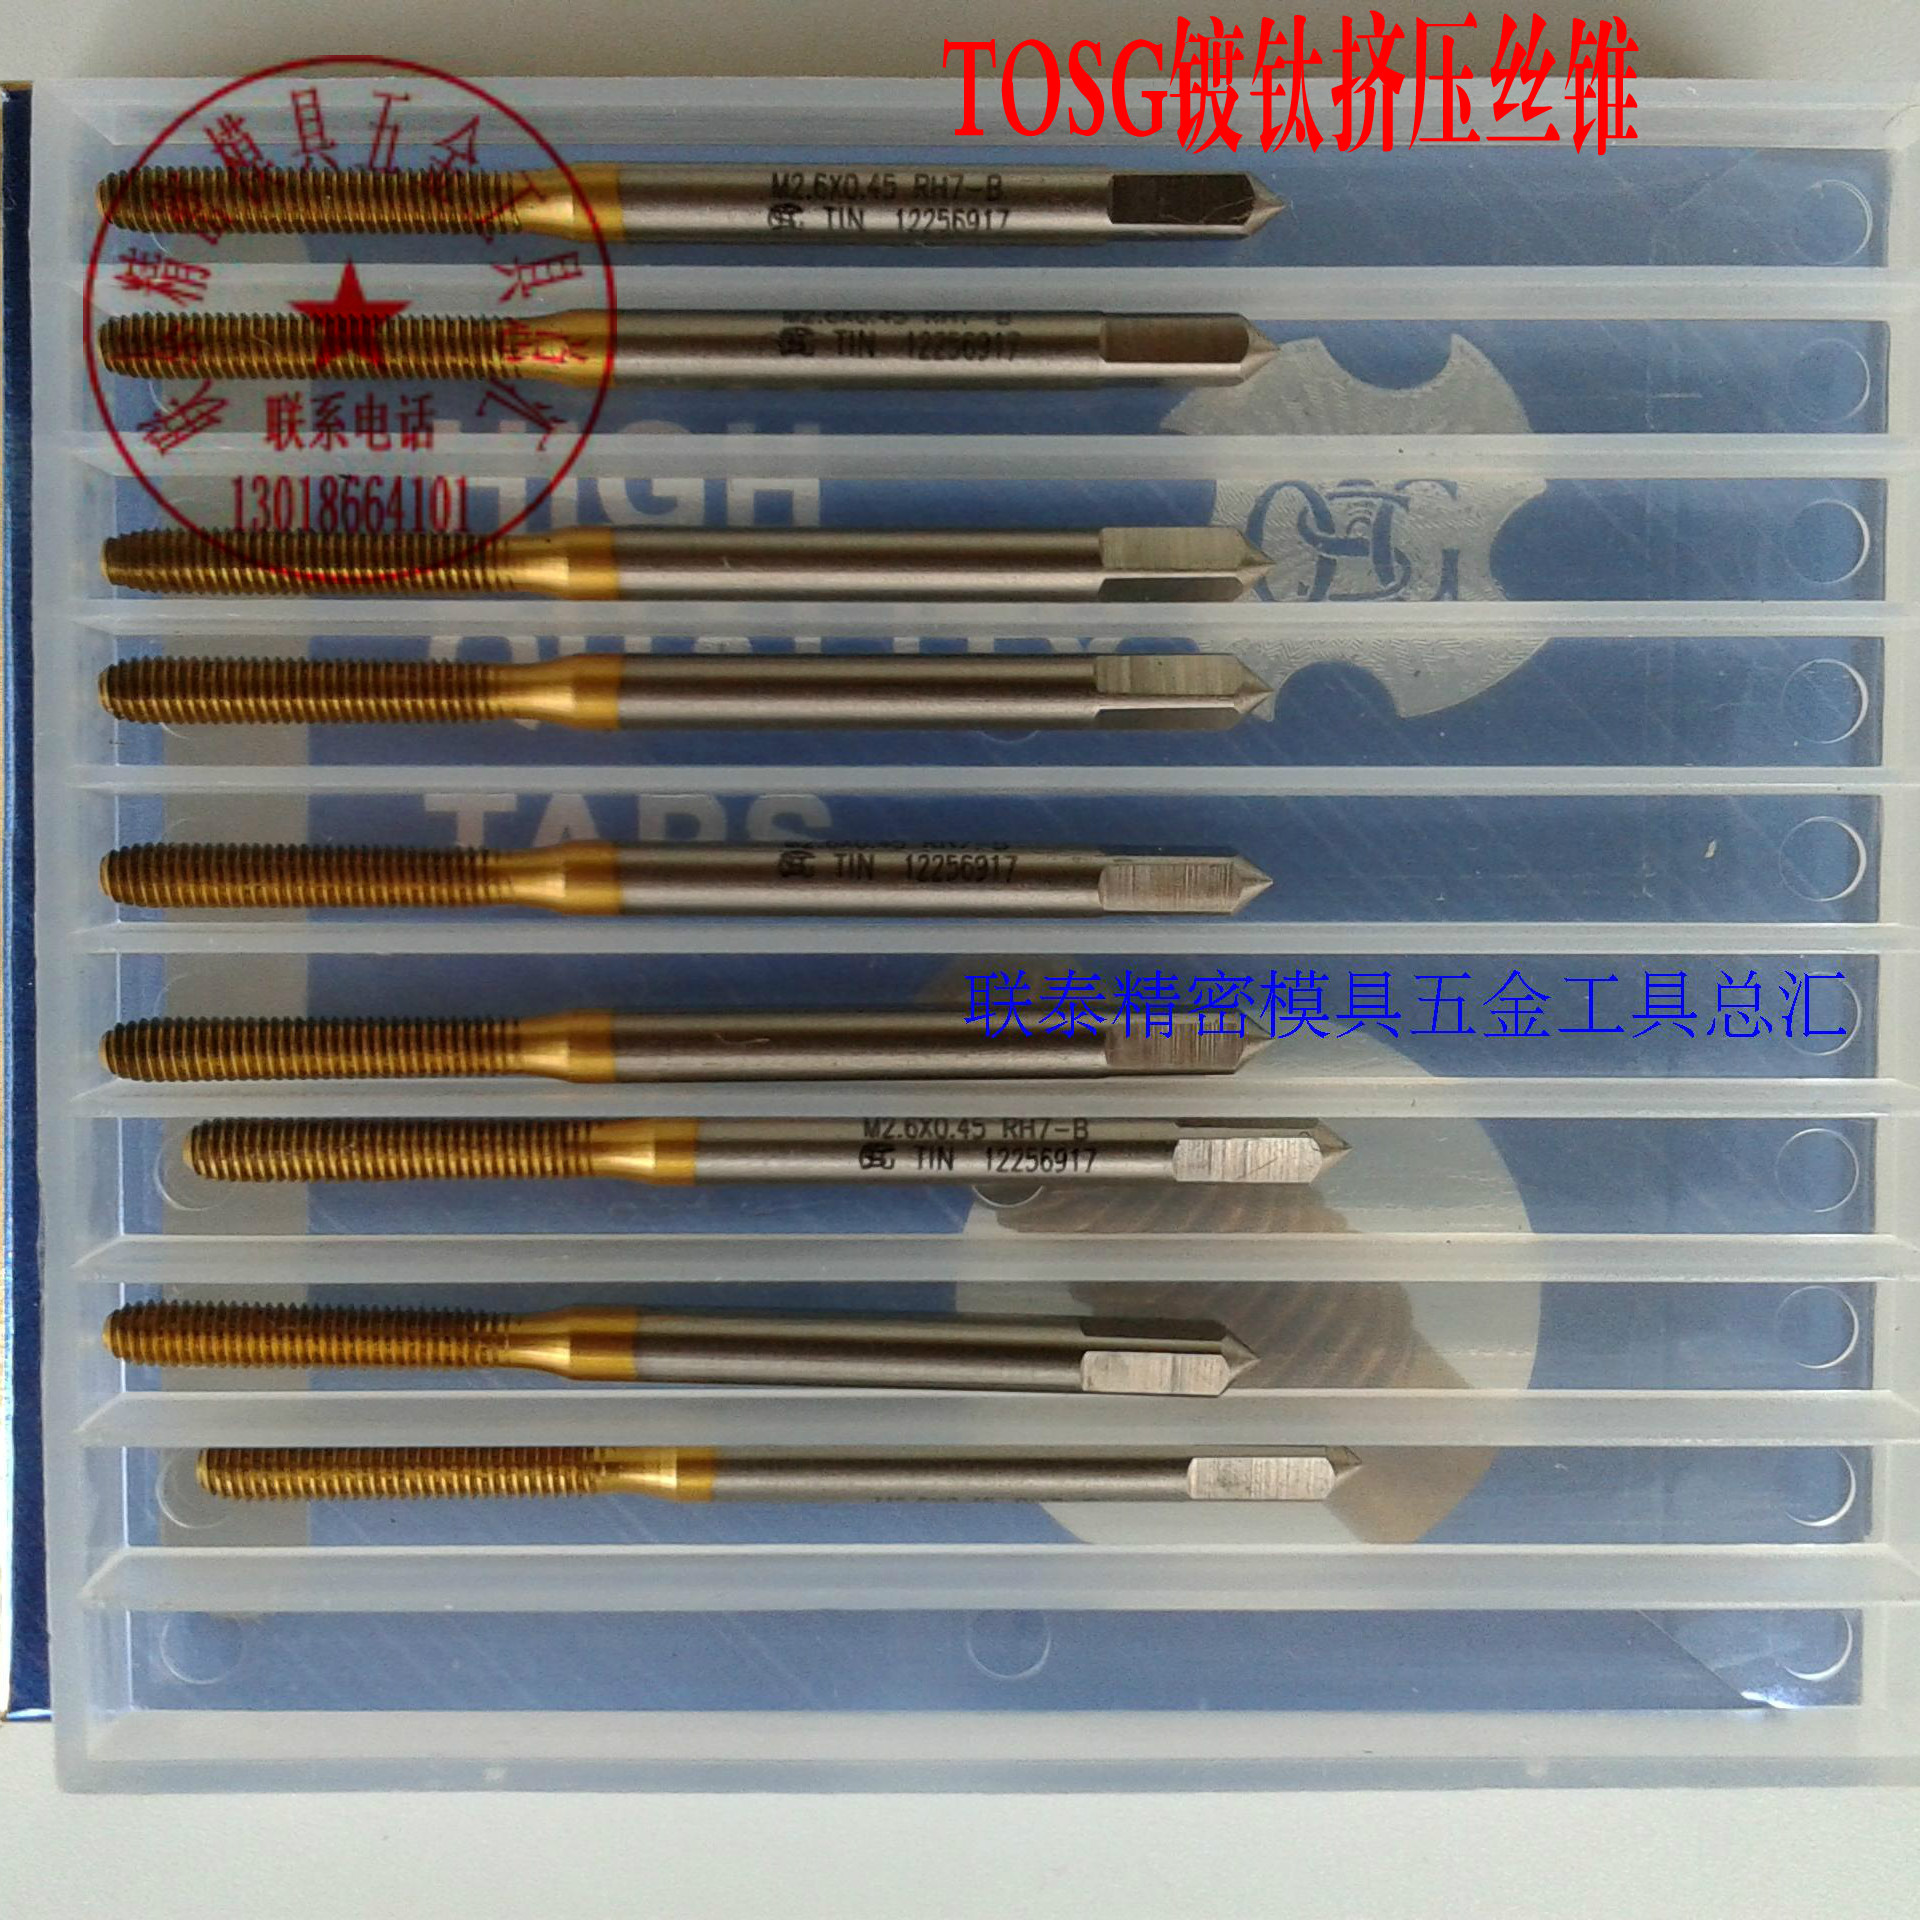 TOSG Ti M2.3X0.4M2.5X0.45M2.6X0.35 import squeeze tooth extrusion screw tap chipless tap